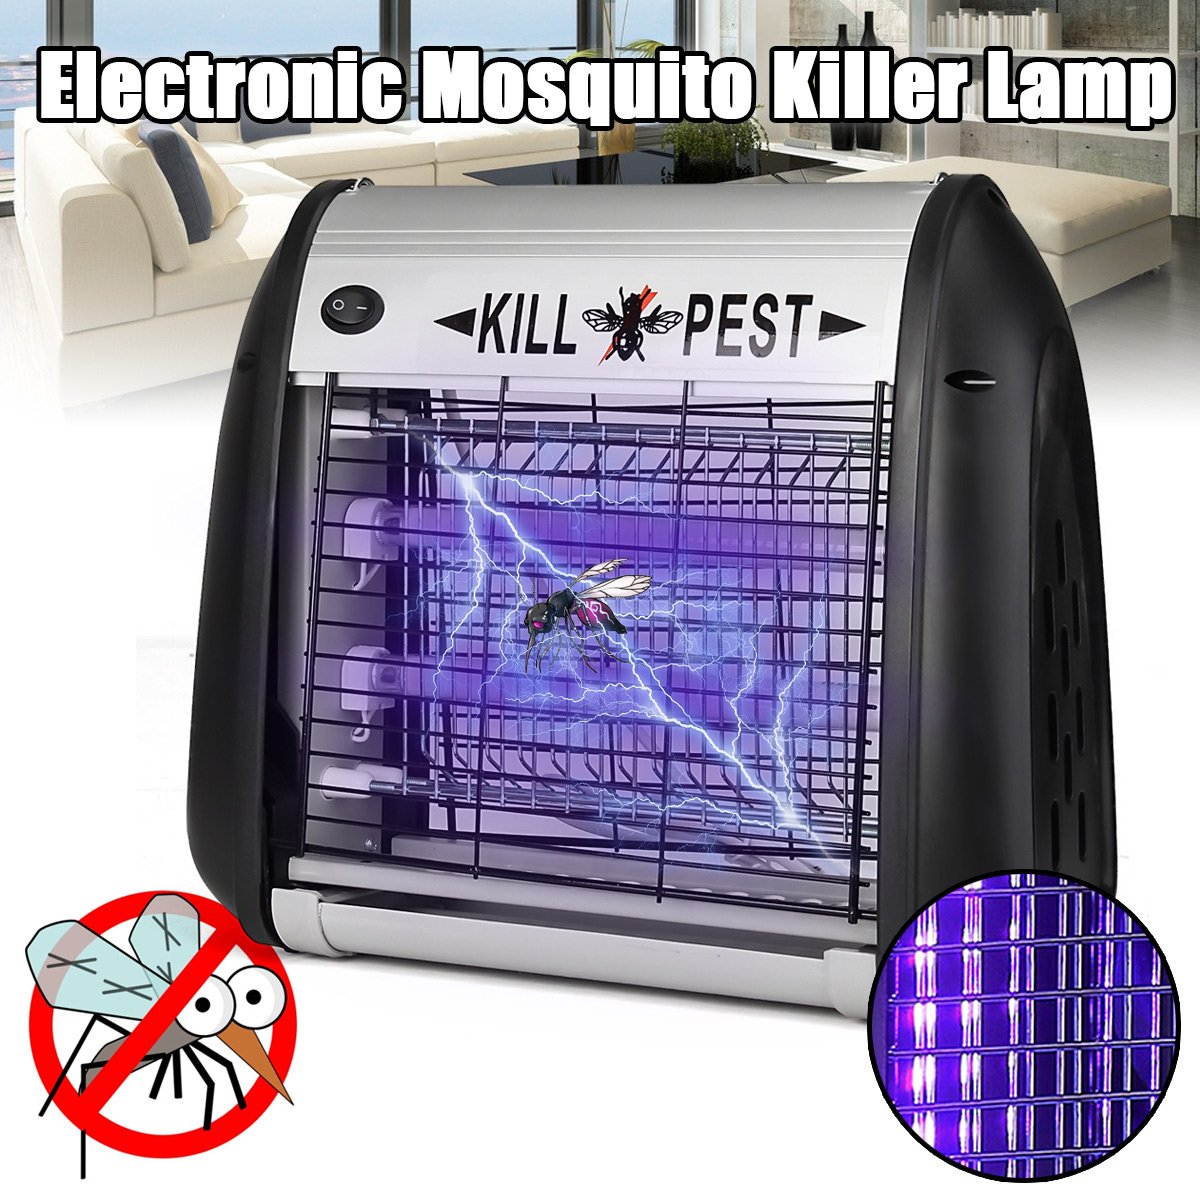 12W UV Electric Mosquito Killer Lamp LED Night Light Insect Repeller Killing Lights Fly Pest Mosquito Bug Zapper Trap Lighting uv 5w electronic mosquito killer repeller zapper led indoor bed room insect killer pest controll outdoor home fly bug trap lamp